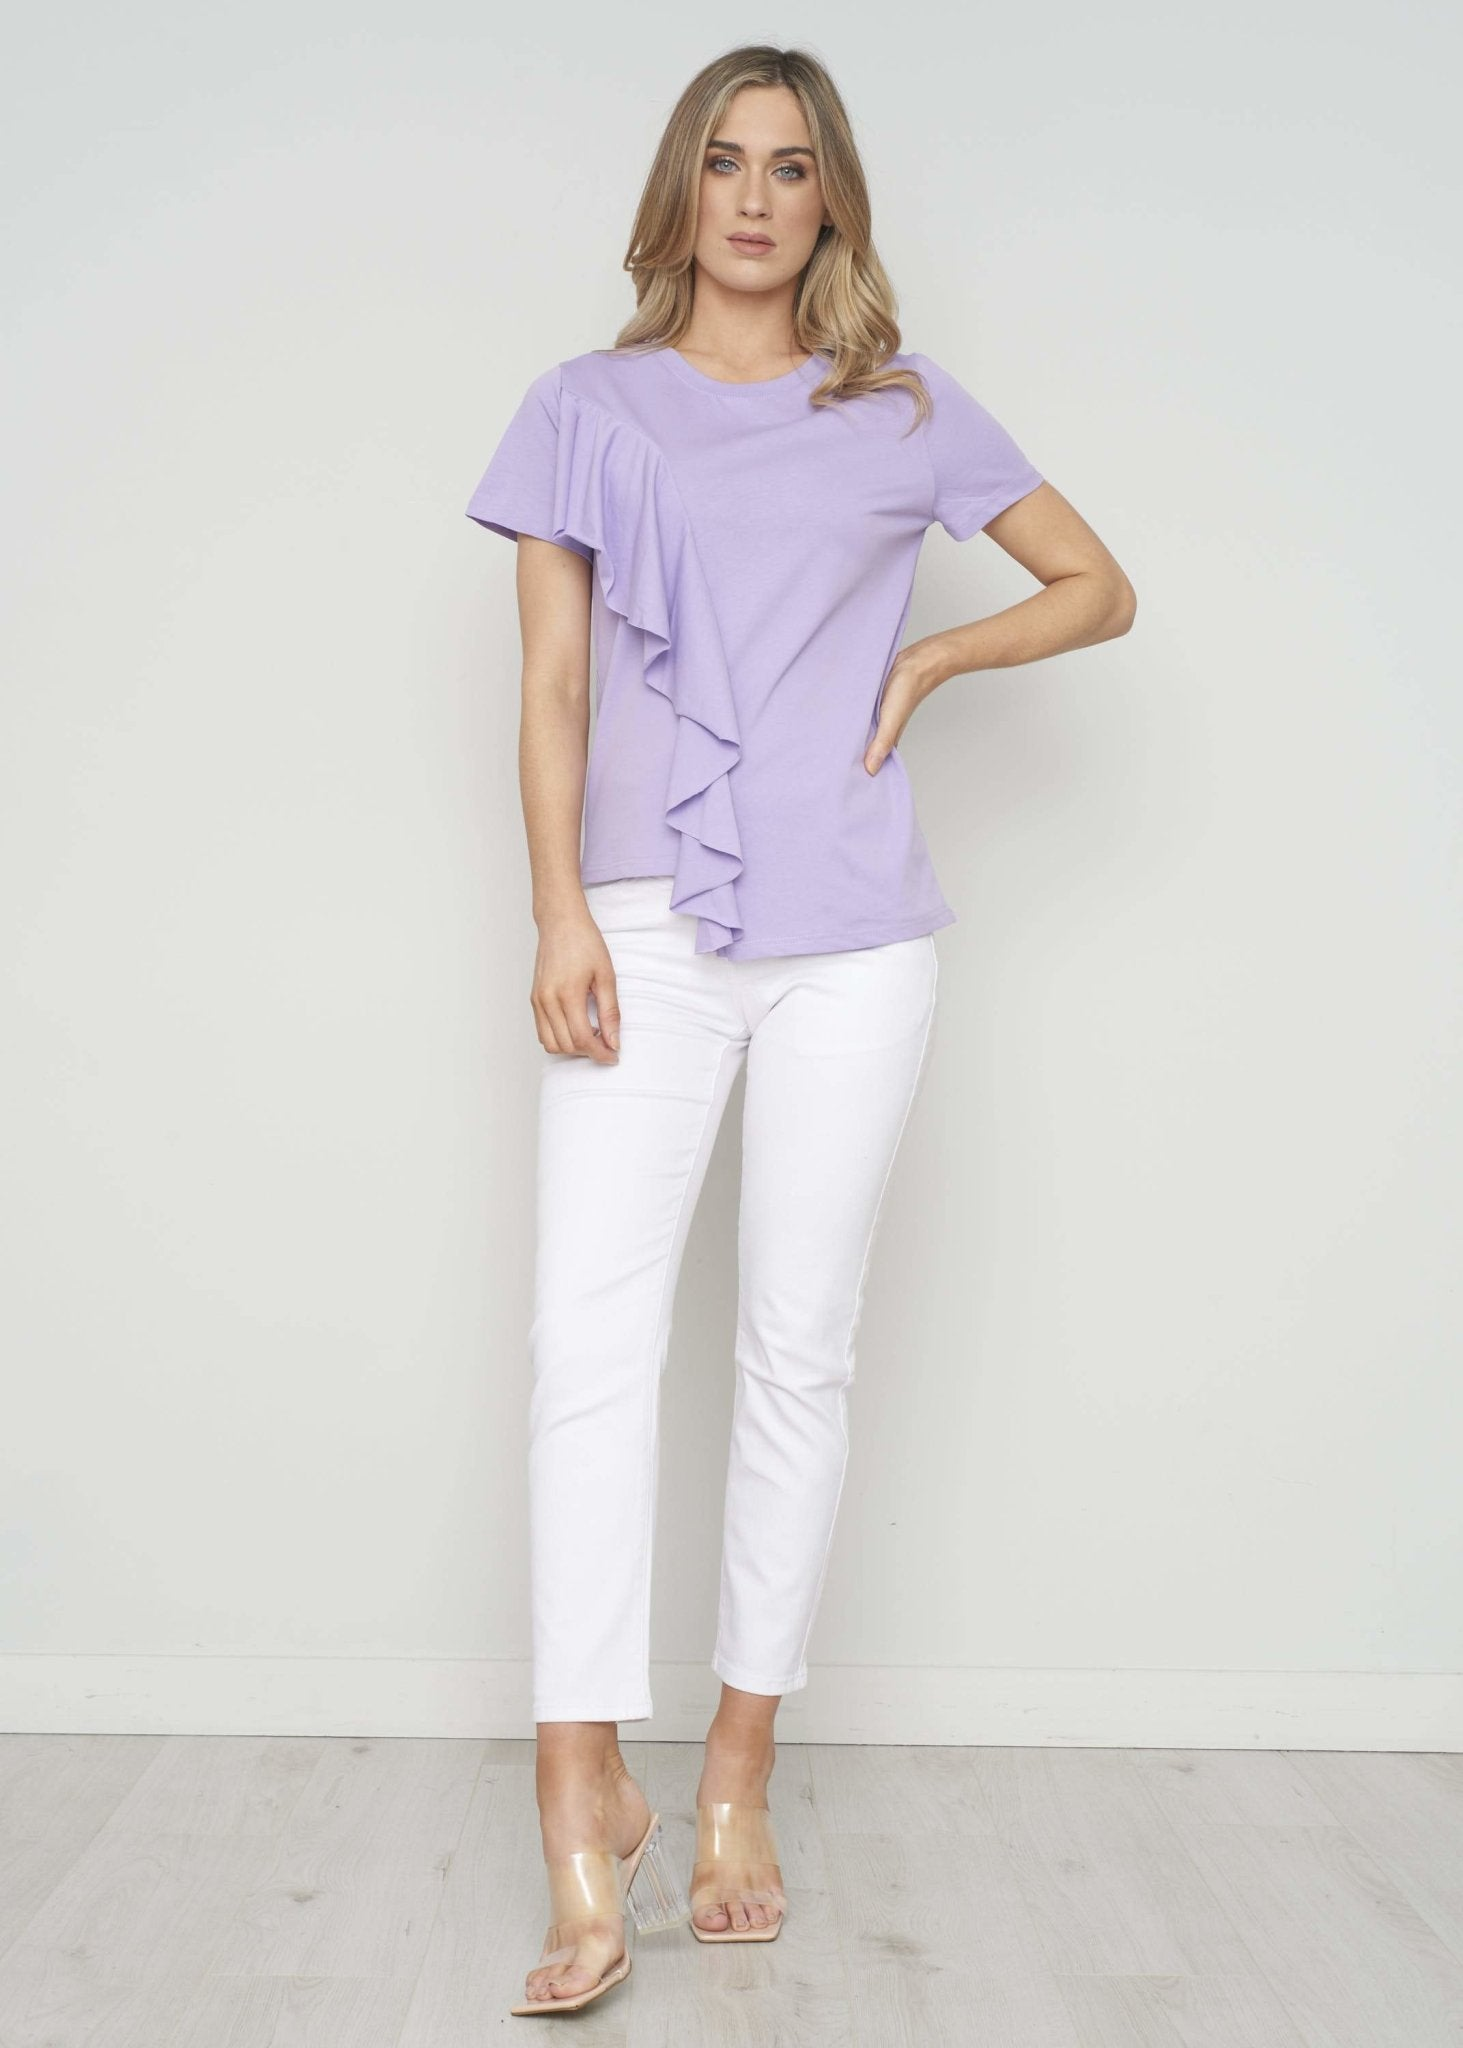 Becca Ruffle Front T-Shirt In Lilac - The Walk in Wardrobe